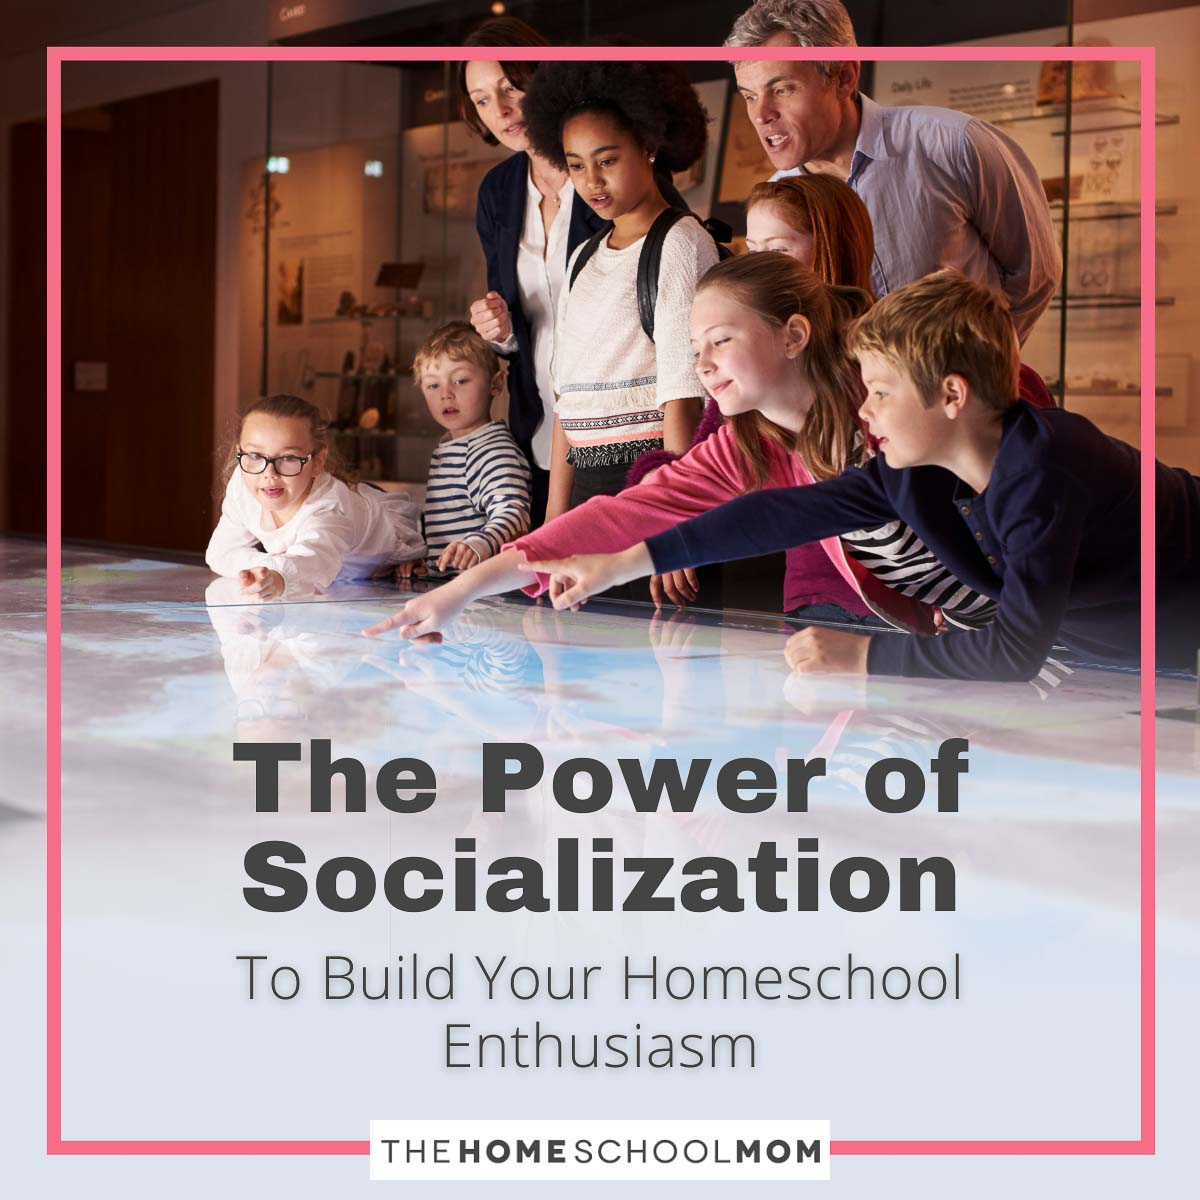 The Power of Socialization to Build Your Homeschool Enthusiasm